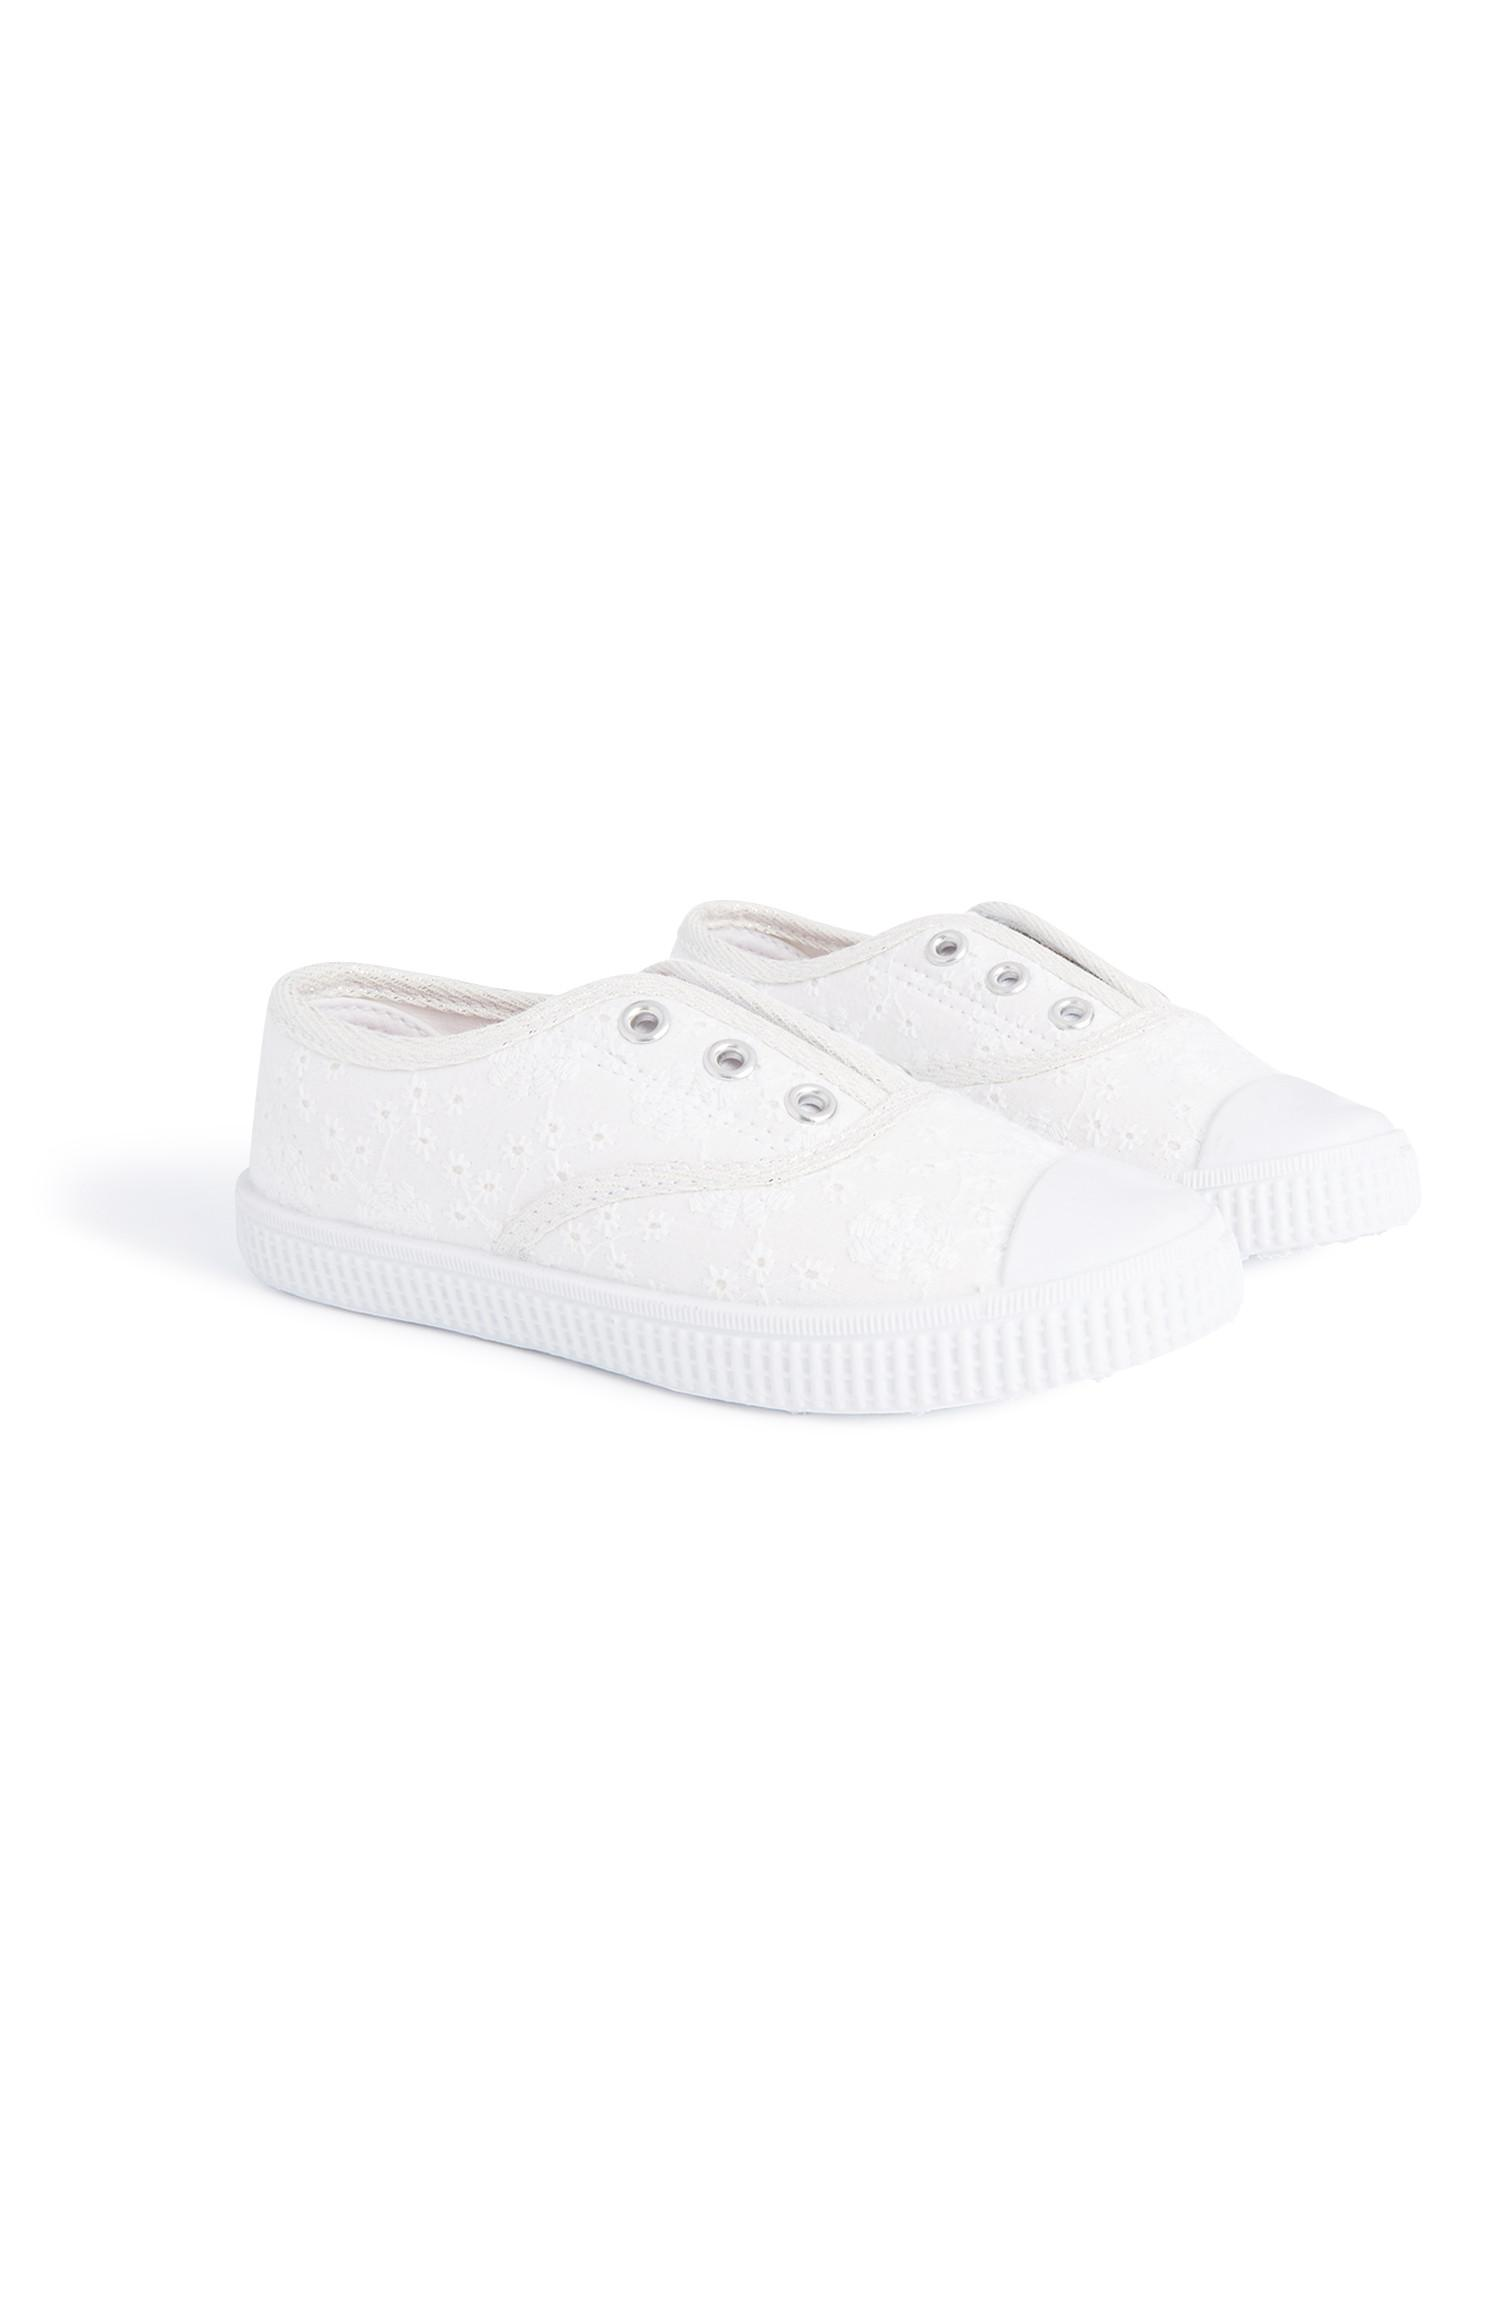 Younger Girl White Laceless Pump